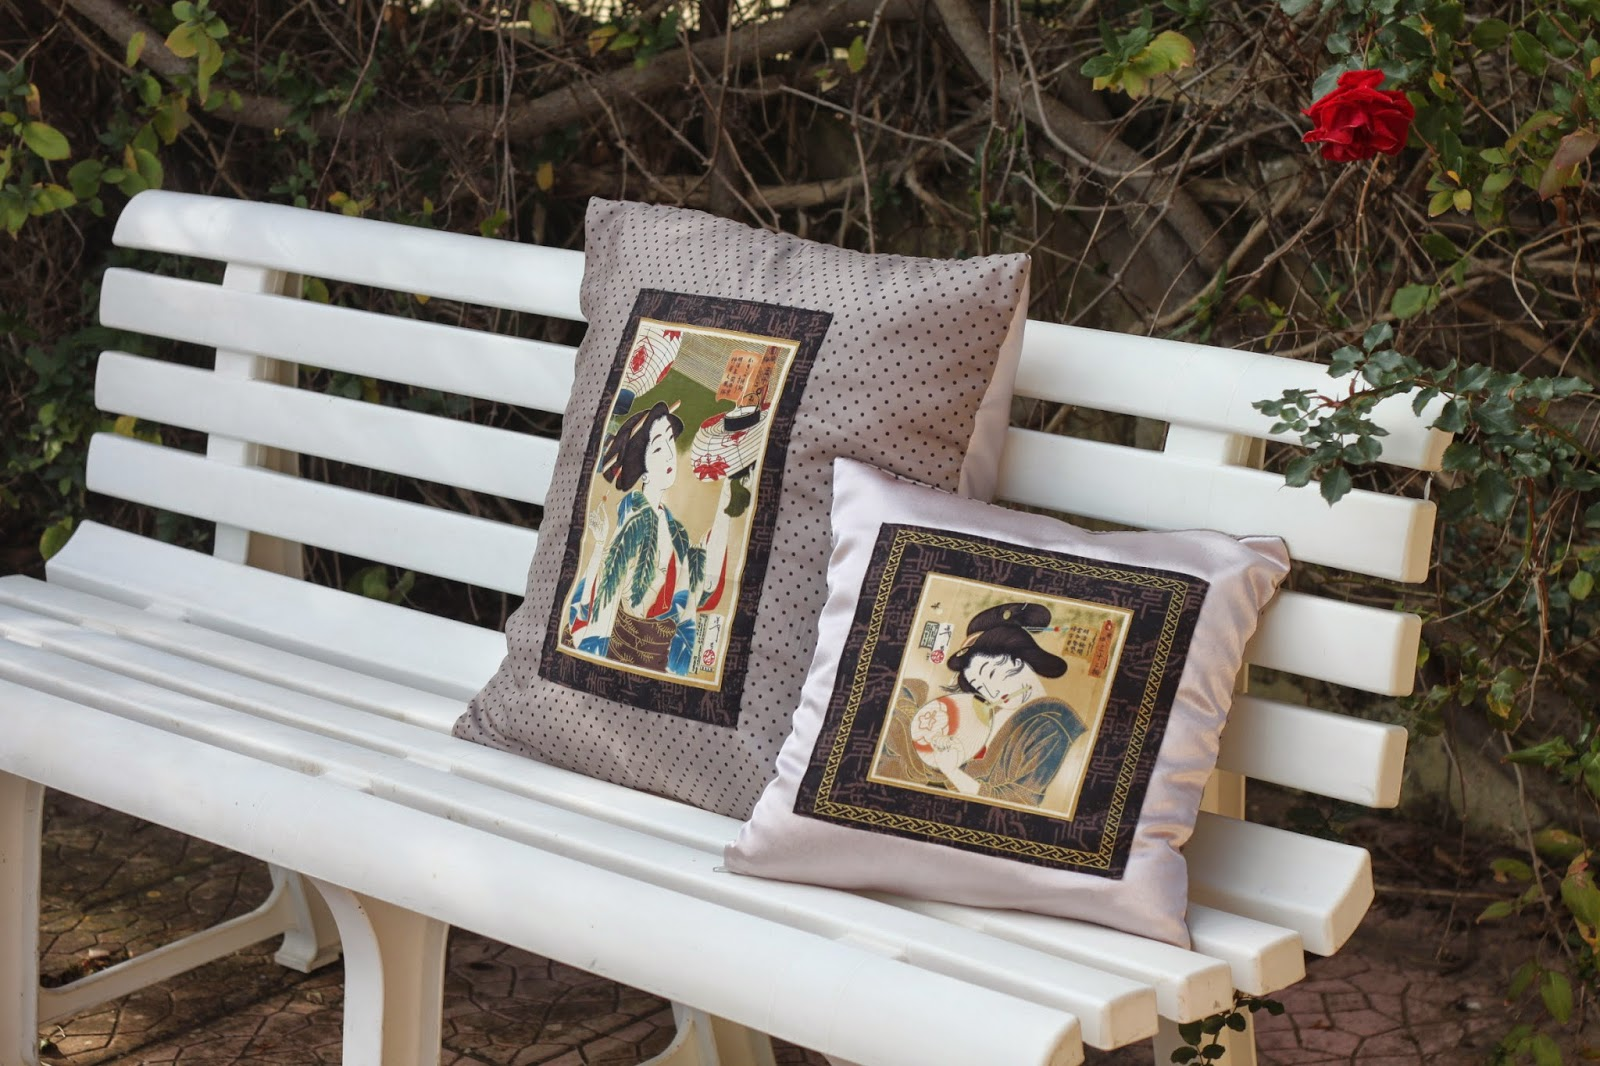 https://www.etsy.com/listing/178702443/limited-edition-set-of-2-cushion-covers?